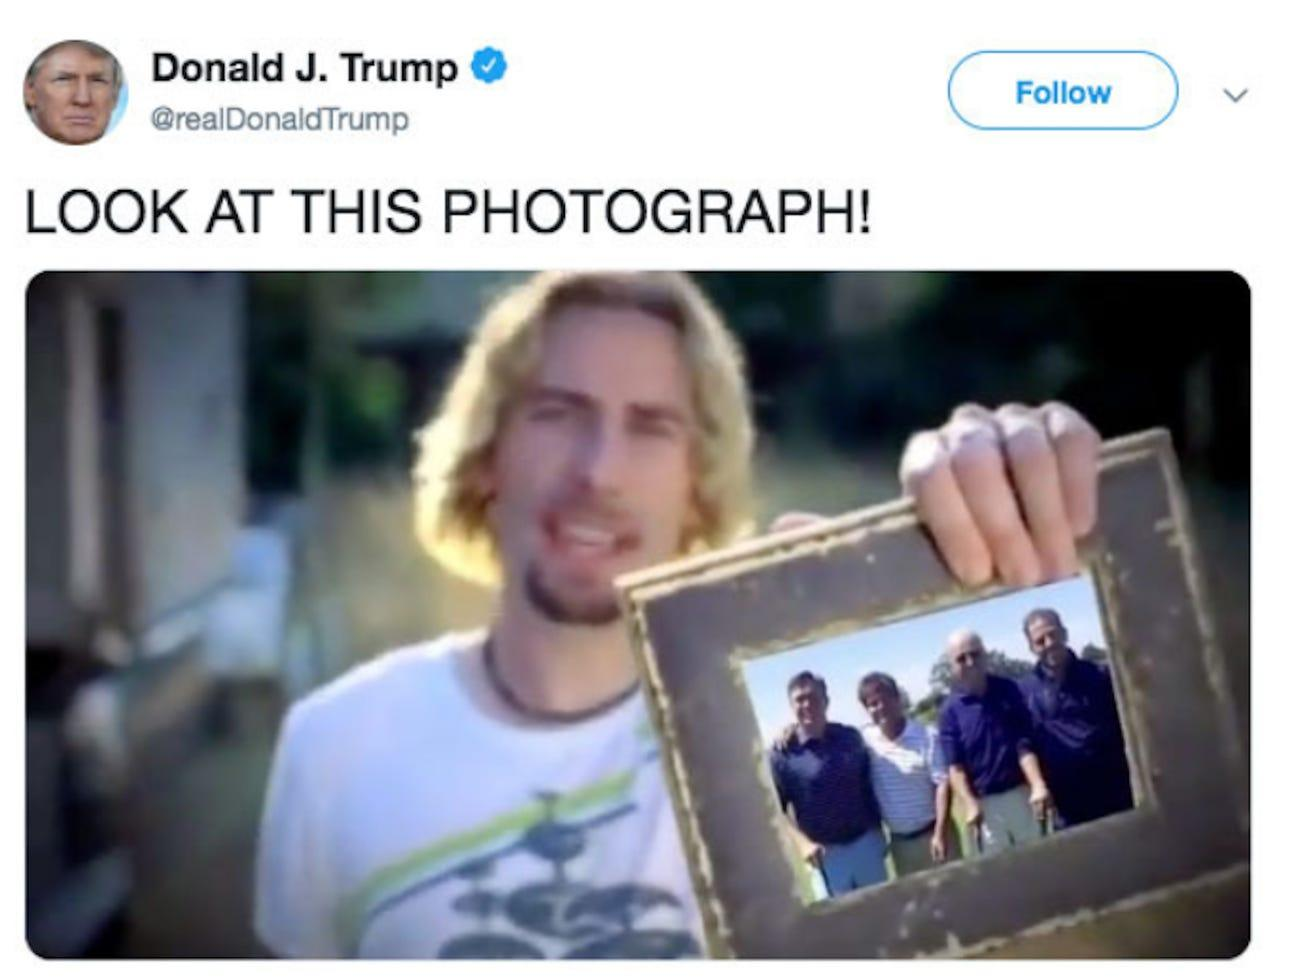 Trump's video taken off Twitter after band Nickelback complains